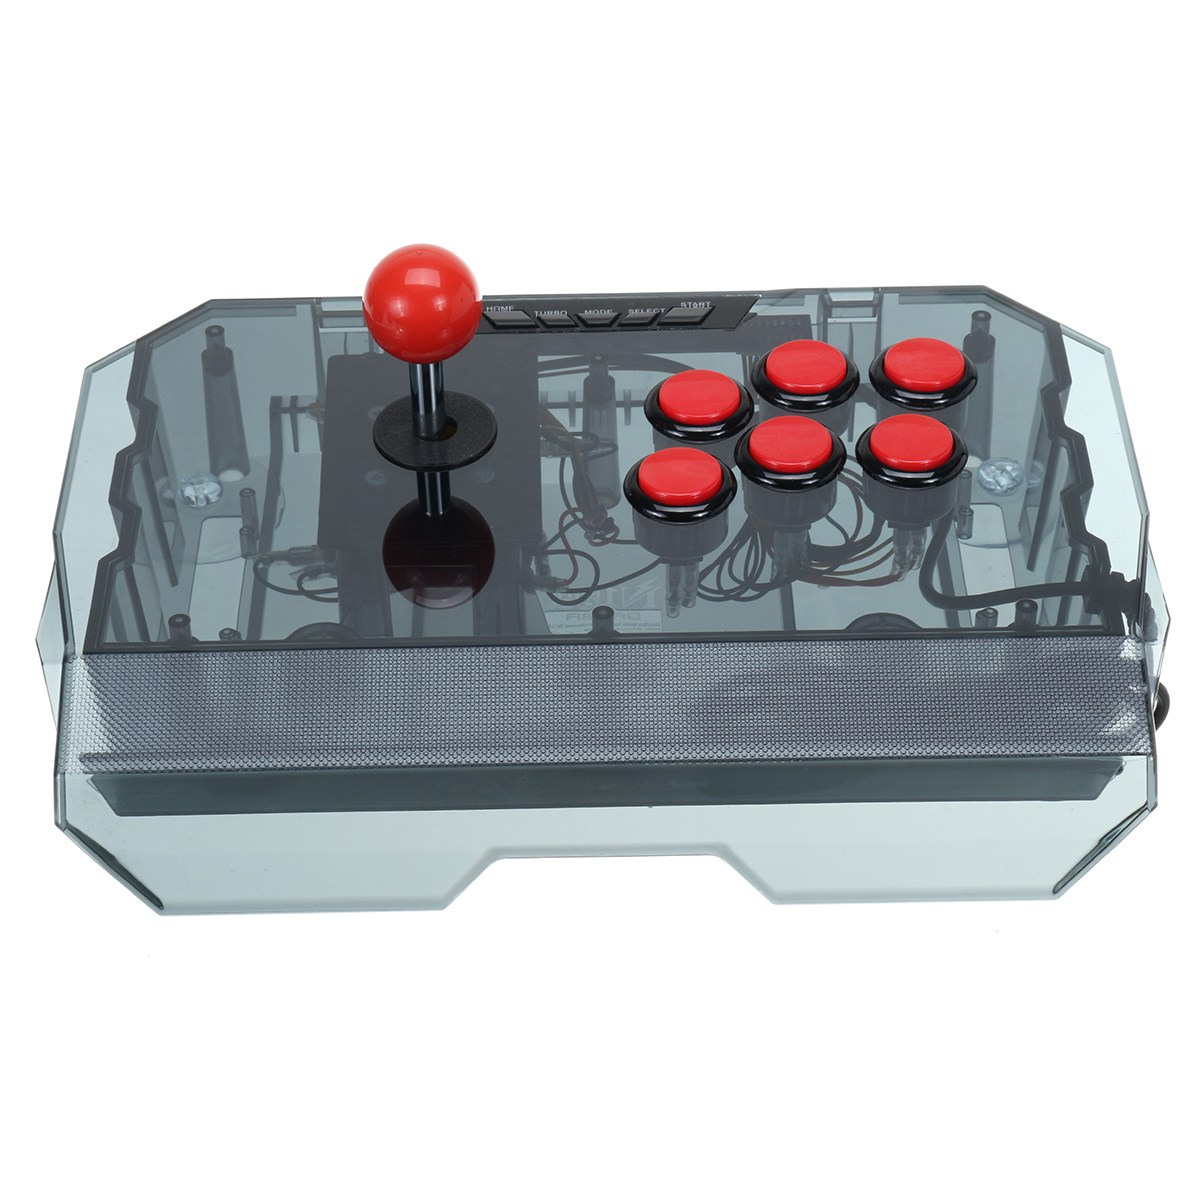 New Video Game Arcade Joystick Console Stick Home Arcade Machine PK Joystick Controller For PS3/PC USB Interface Joystick Arcade nintendo gba video game cartridge console card metroid zero mission eng fra deu esp ita language version